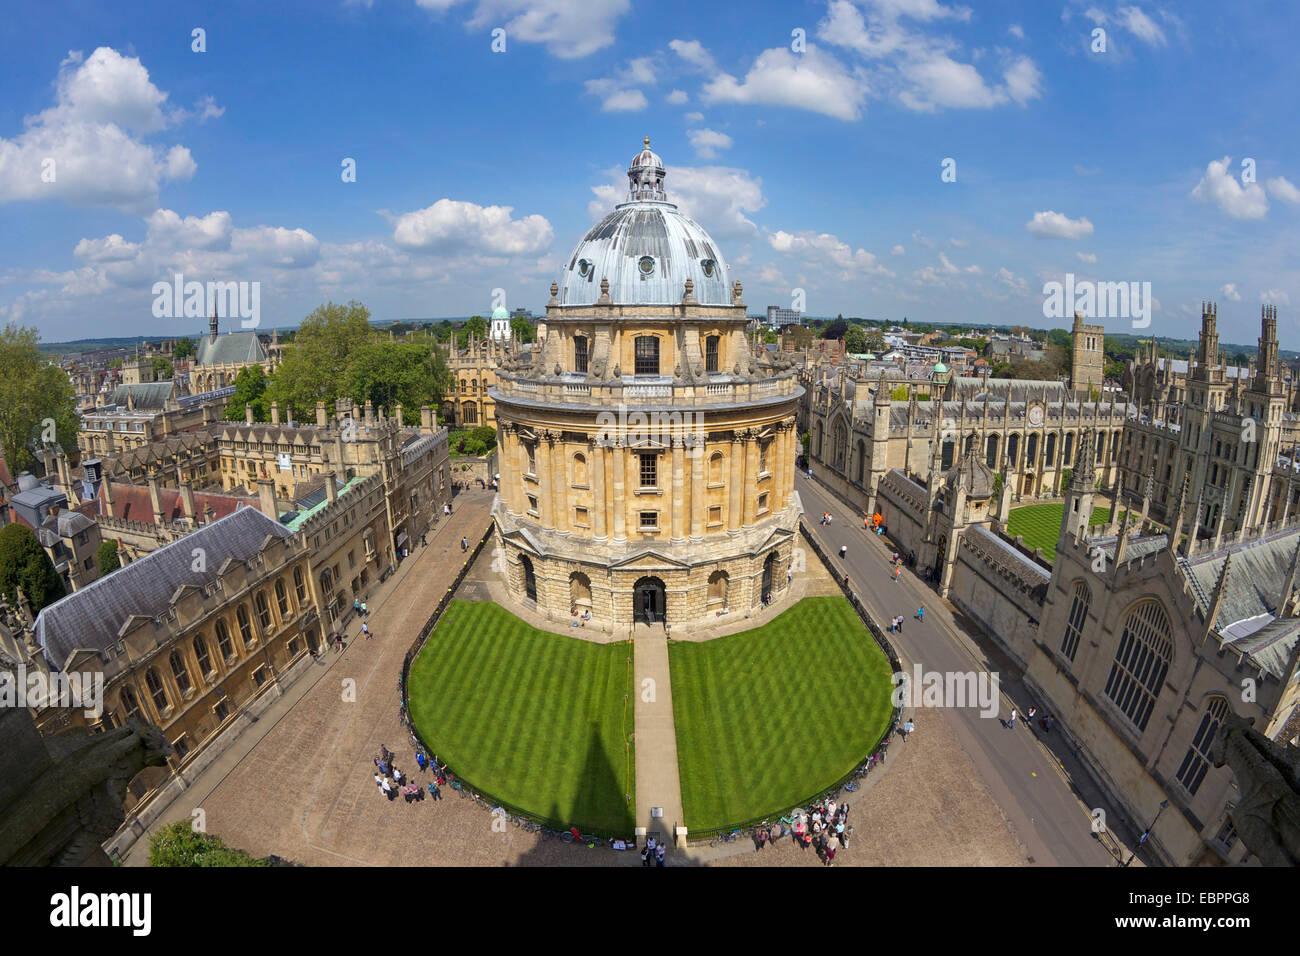 Radcliffe Camera and All Souls College from University Church of St. Mary the Virgin, Oxford, Oxfordshire, England, - Stock Image